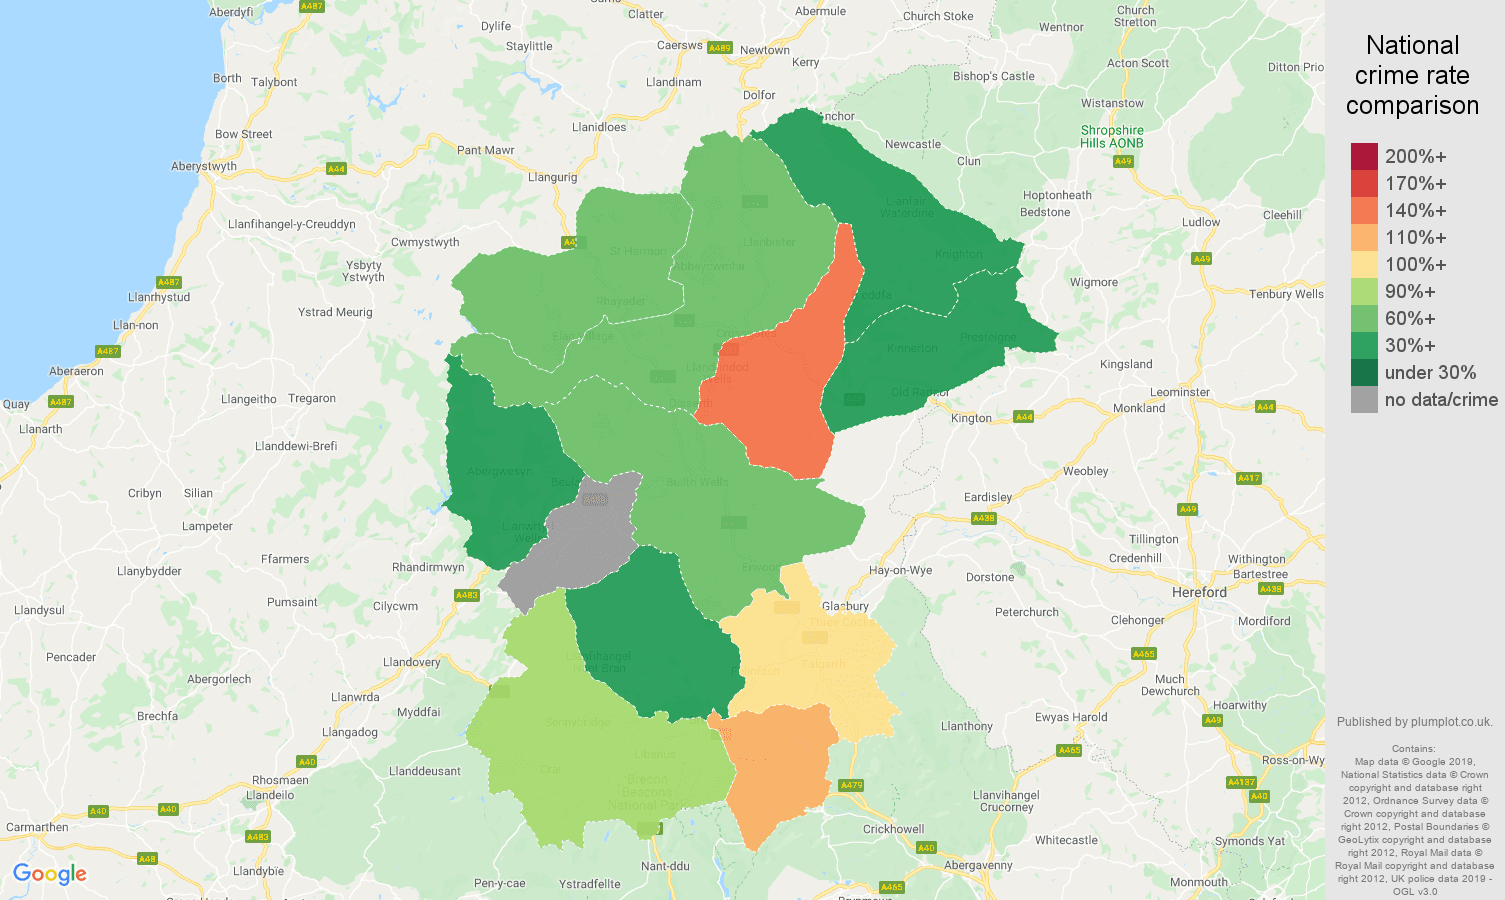 Llandrindod Wells other crime rate comparison map